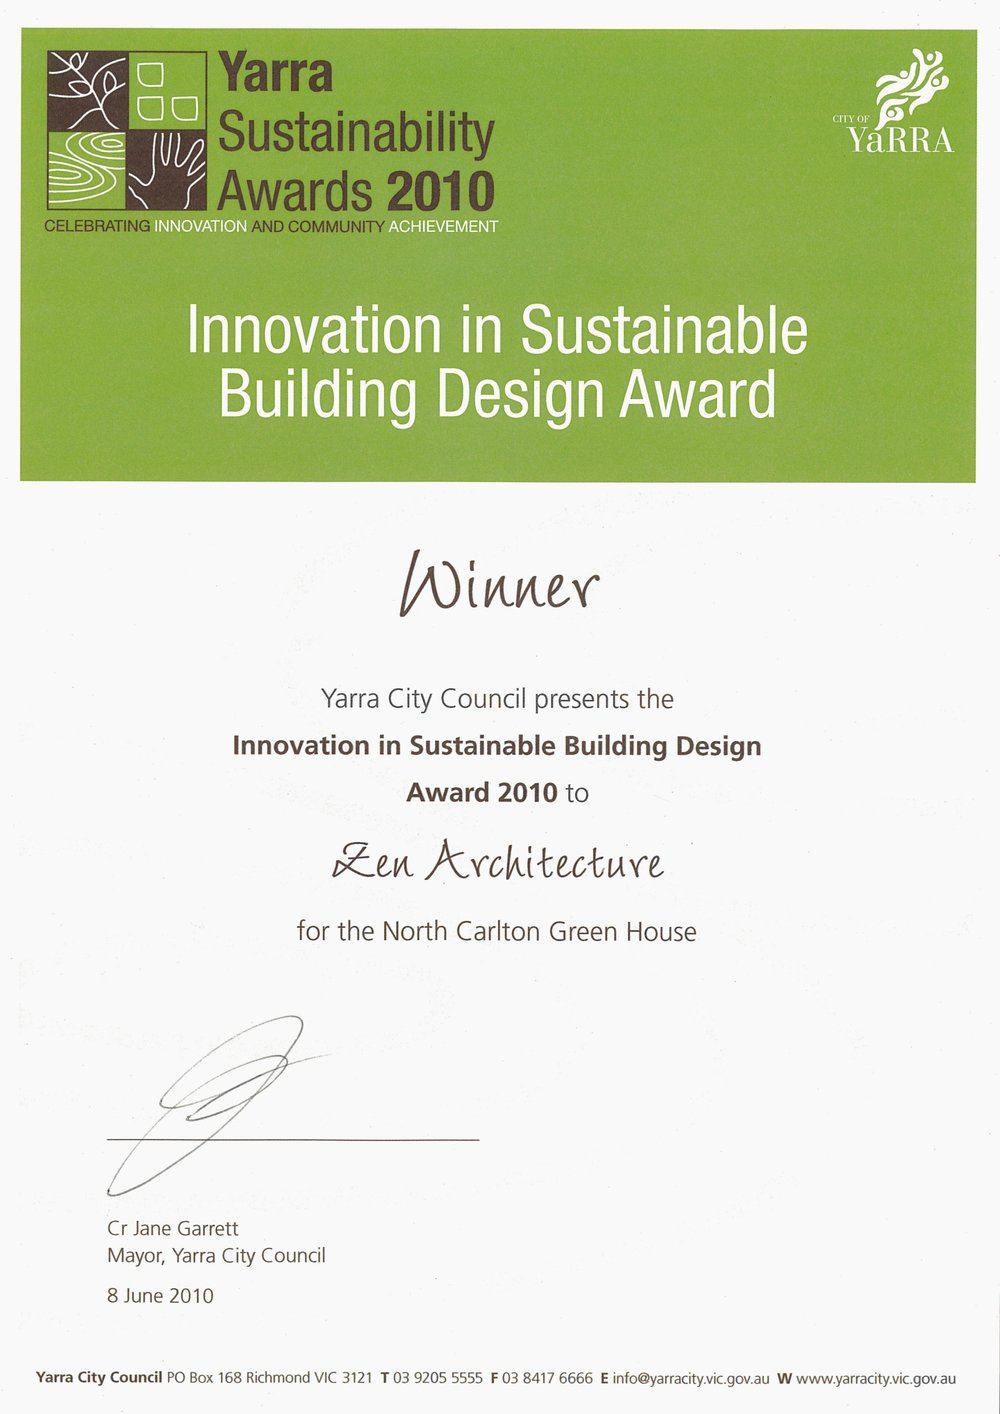 2010_Yarra Sustainability Awards_Winner_Innovation in Sustainable Building Design_North Carlton Green House.jpg